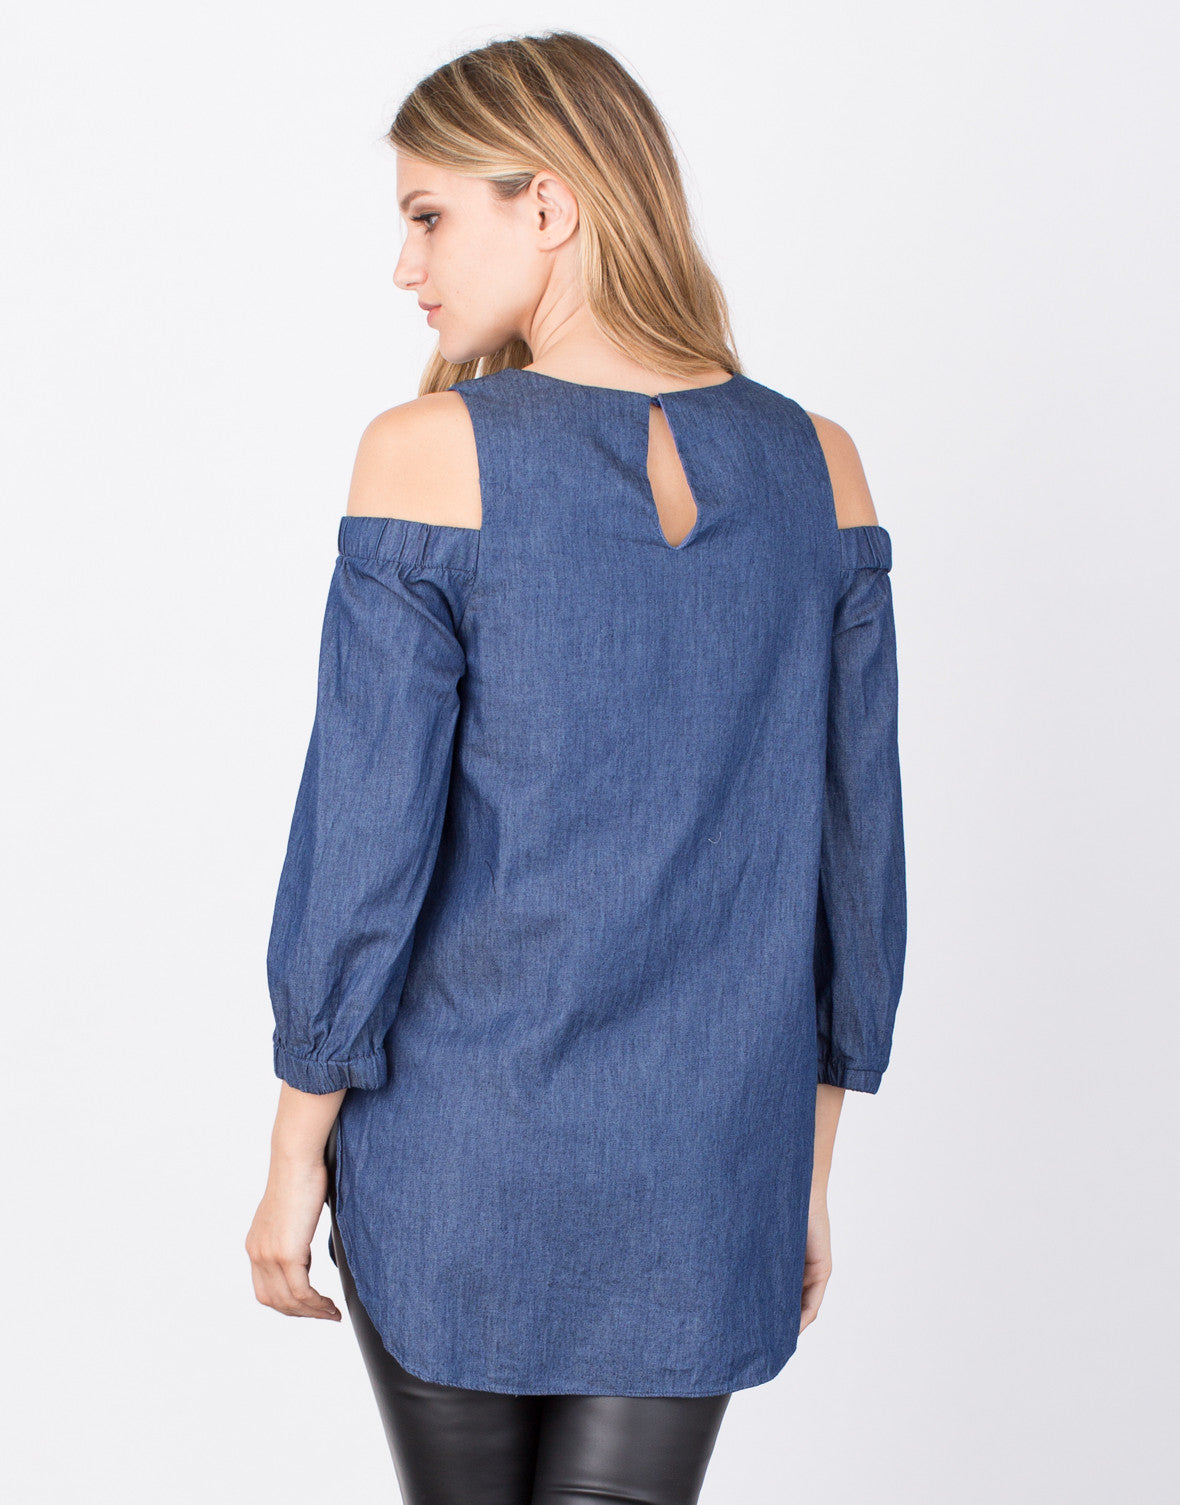 Back View of Denim Cold Shoulder Top